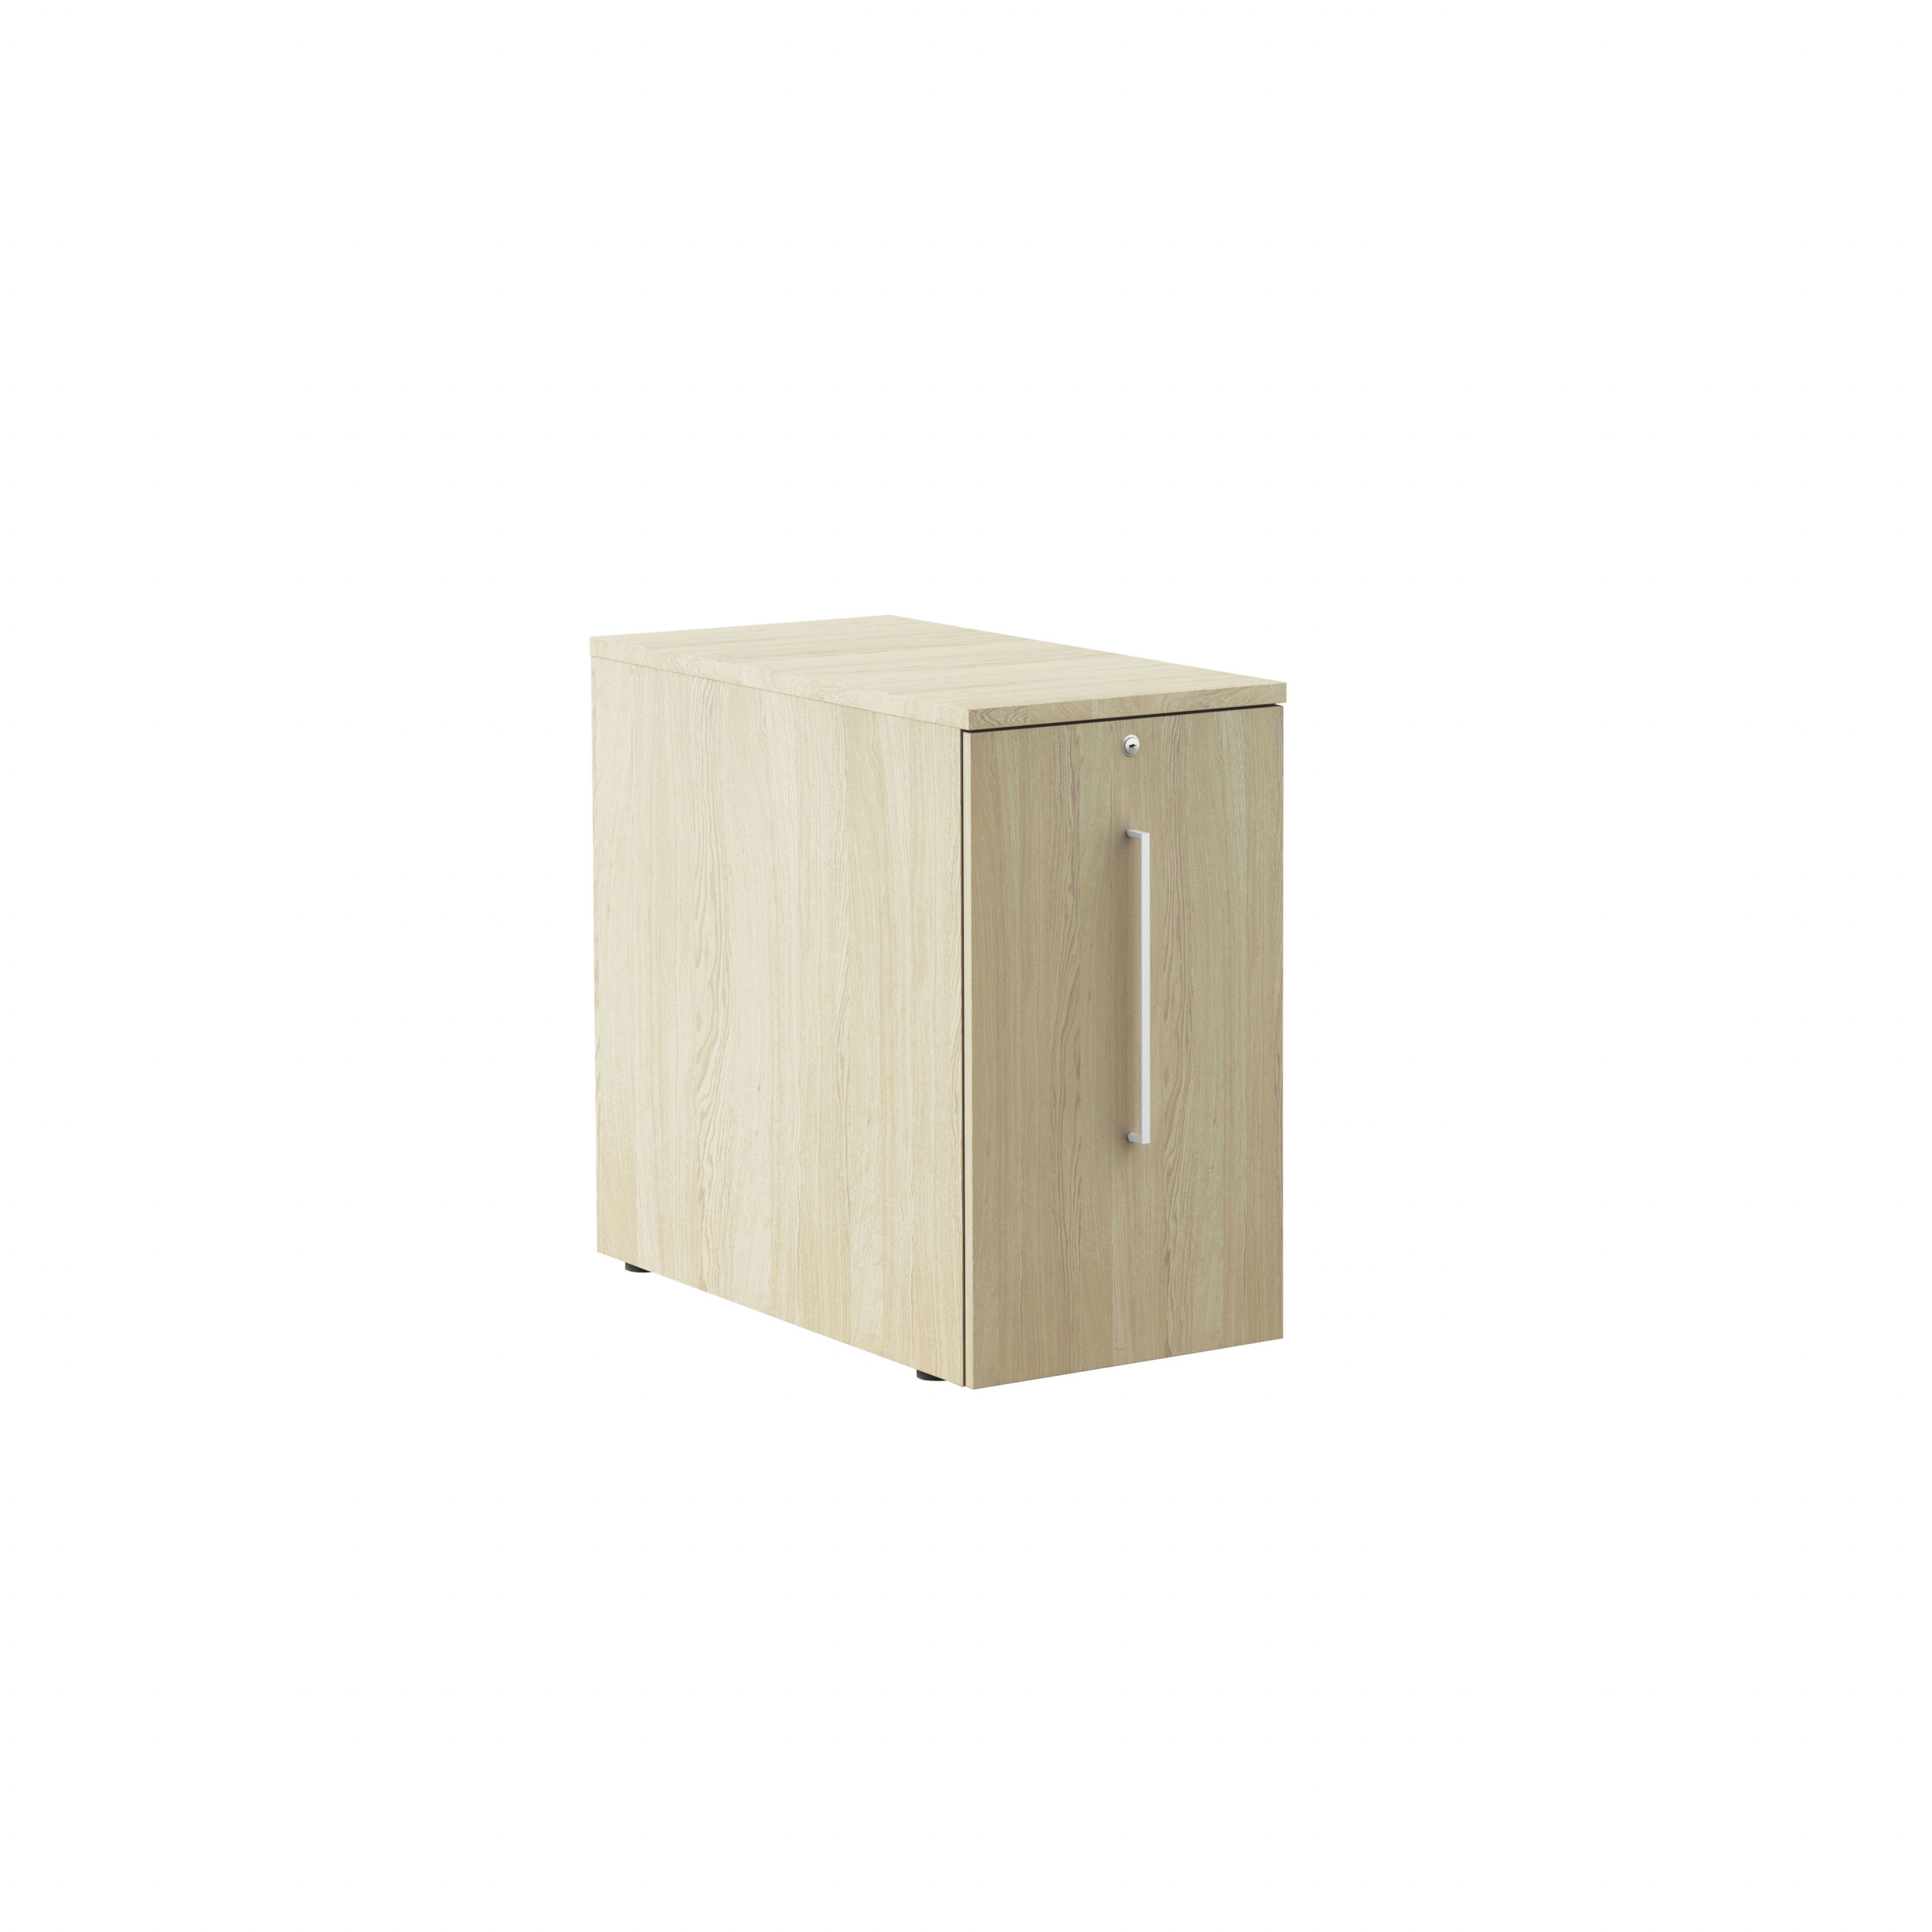 Hold Tower cabinet product image 3